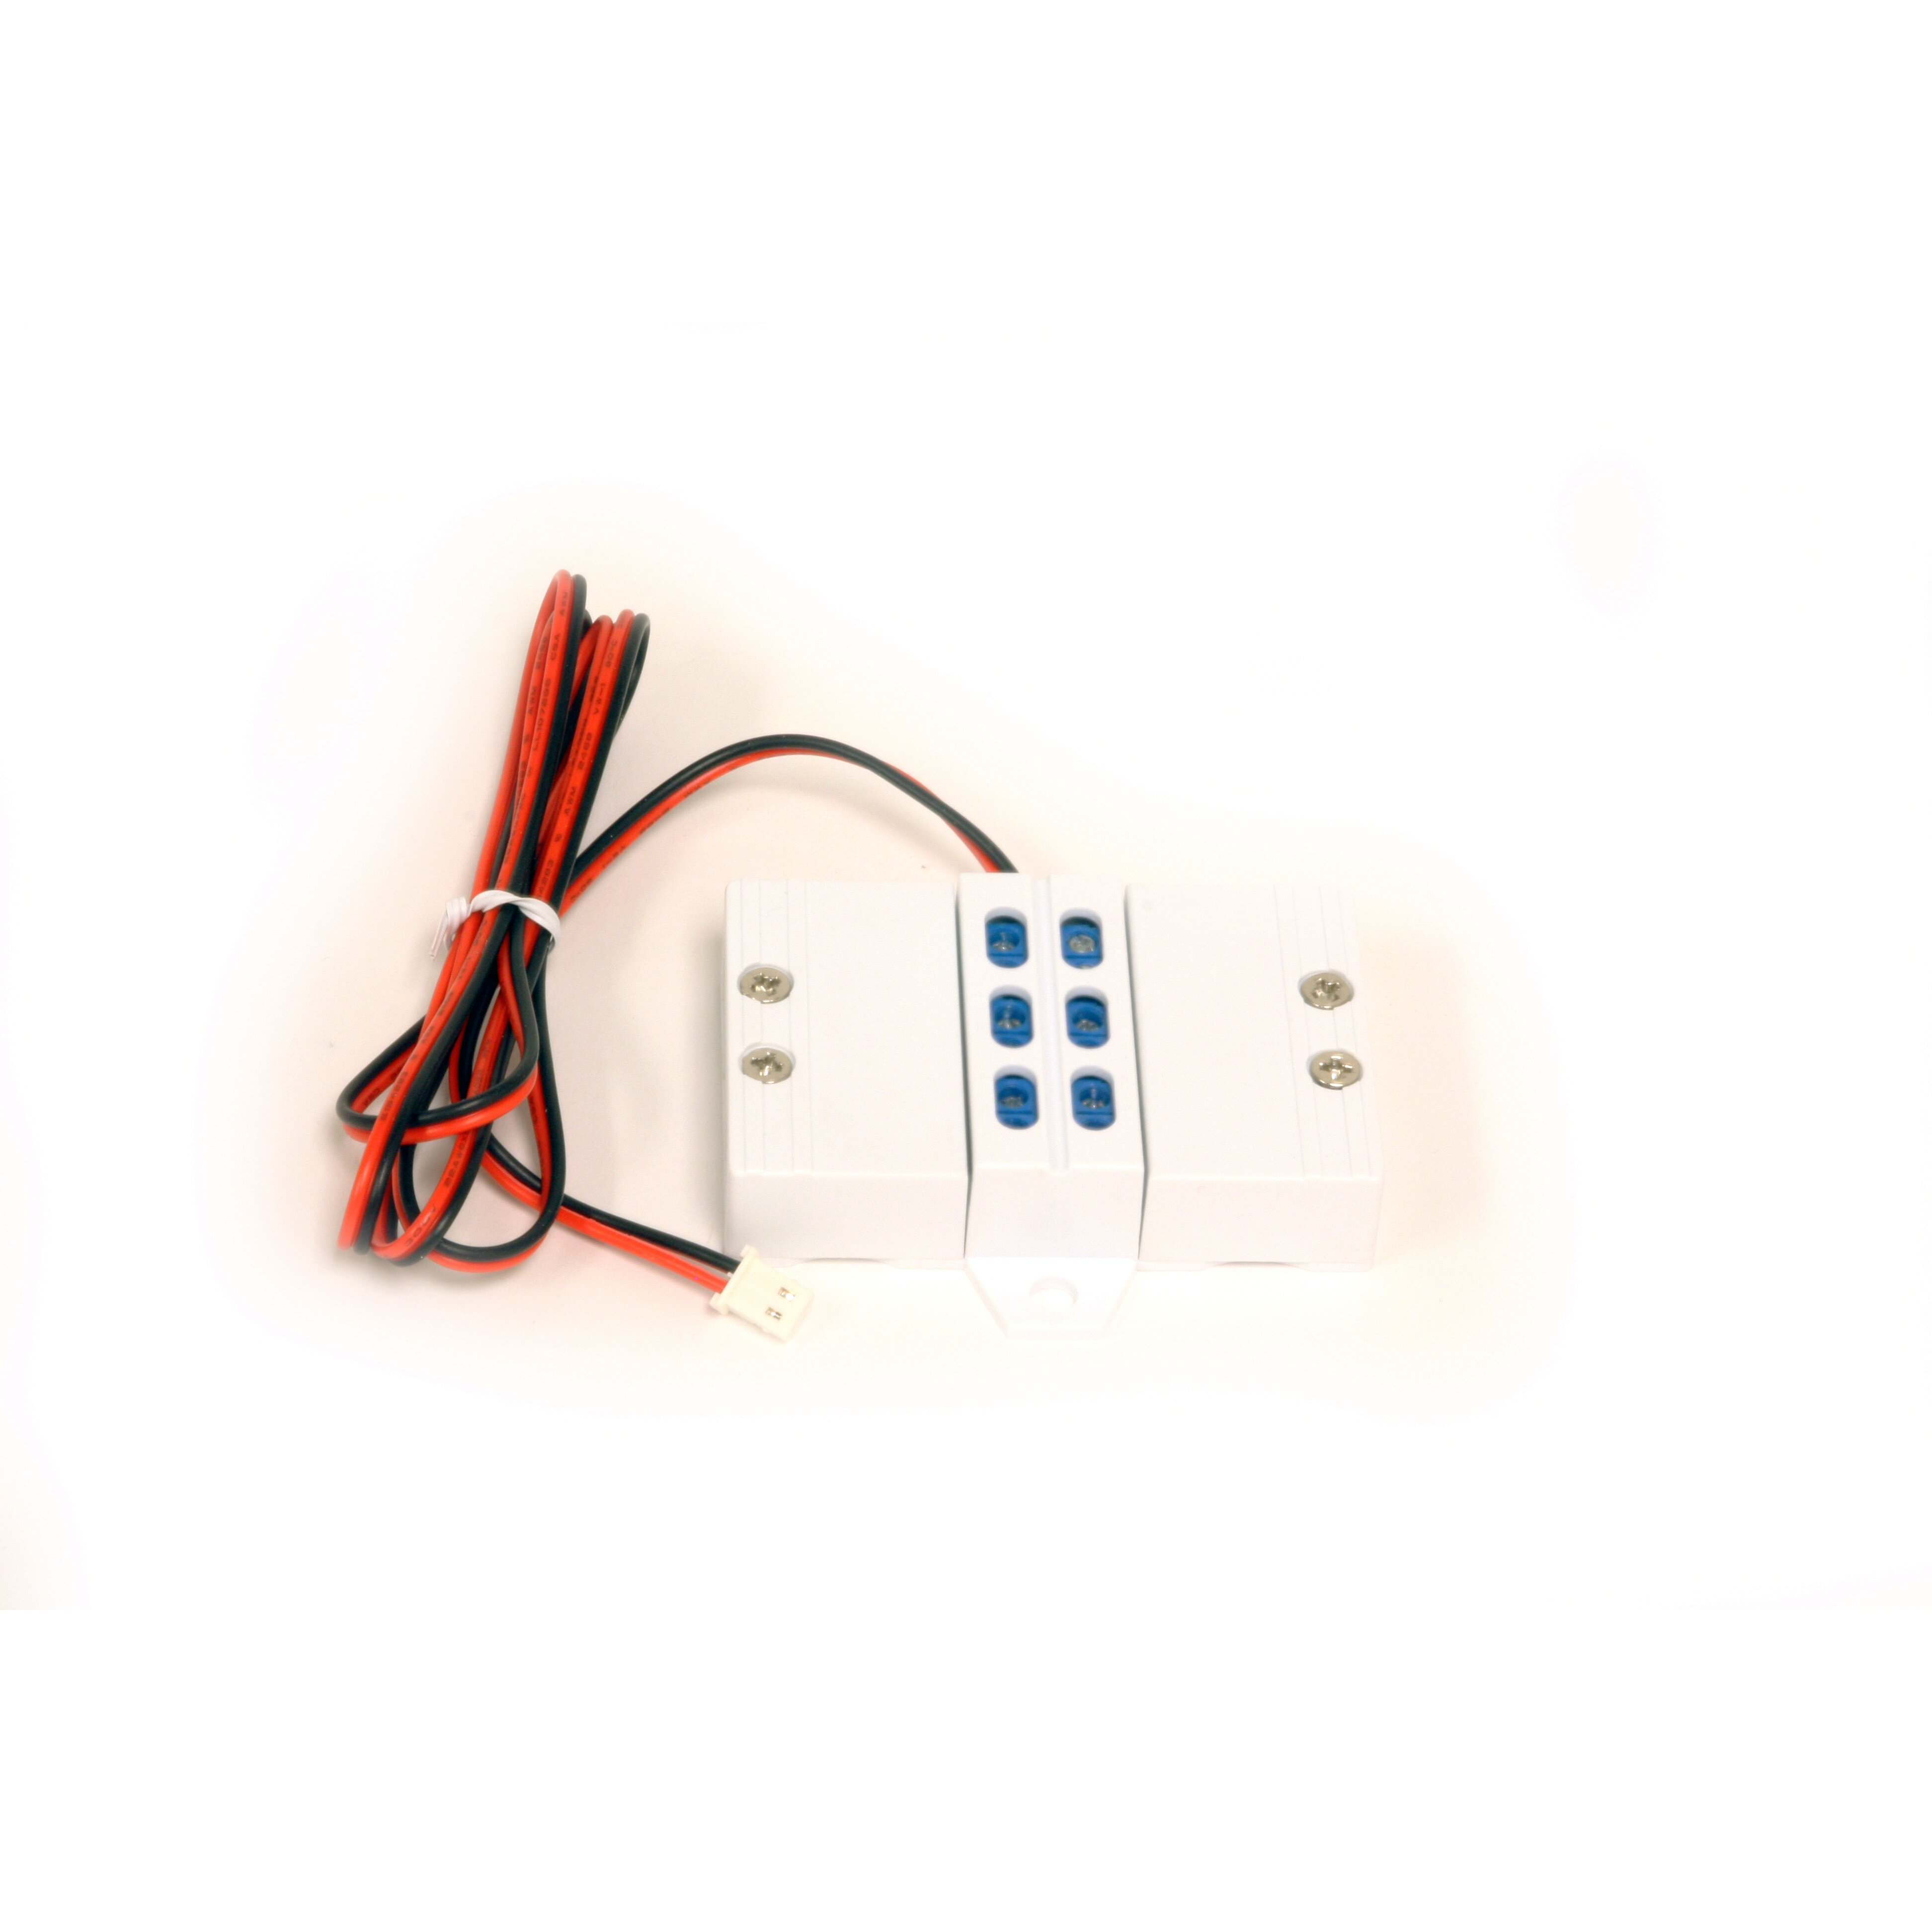 LED End 700 Hardwire Power Connection Hub Wayfair Supply